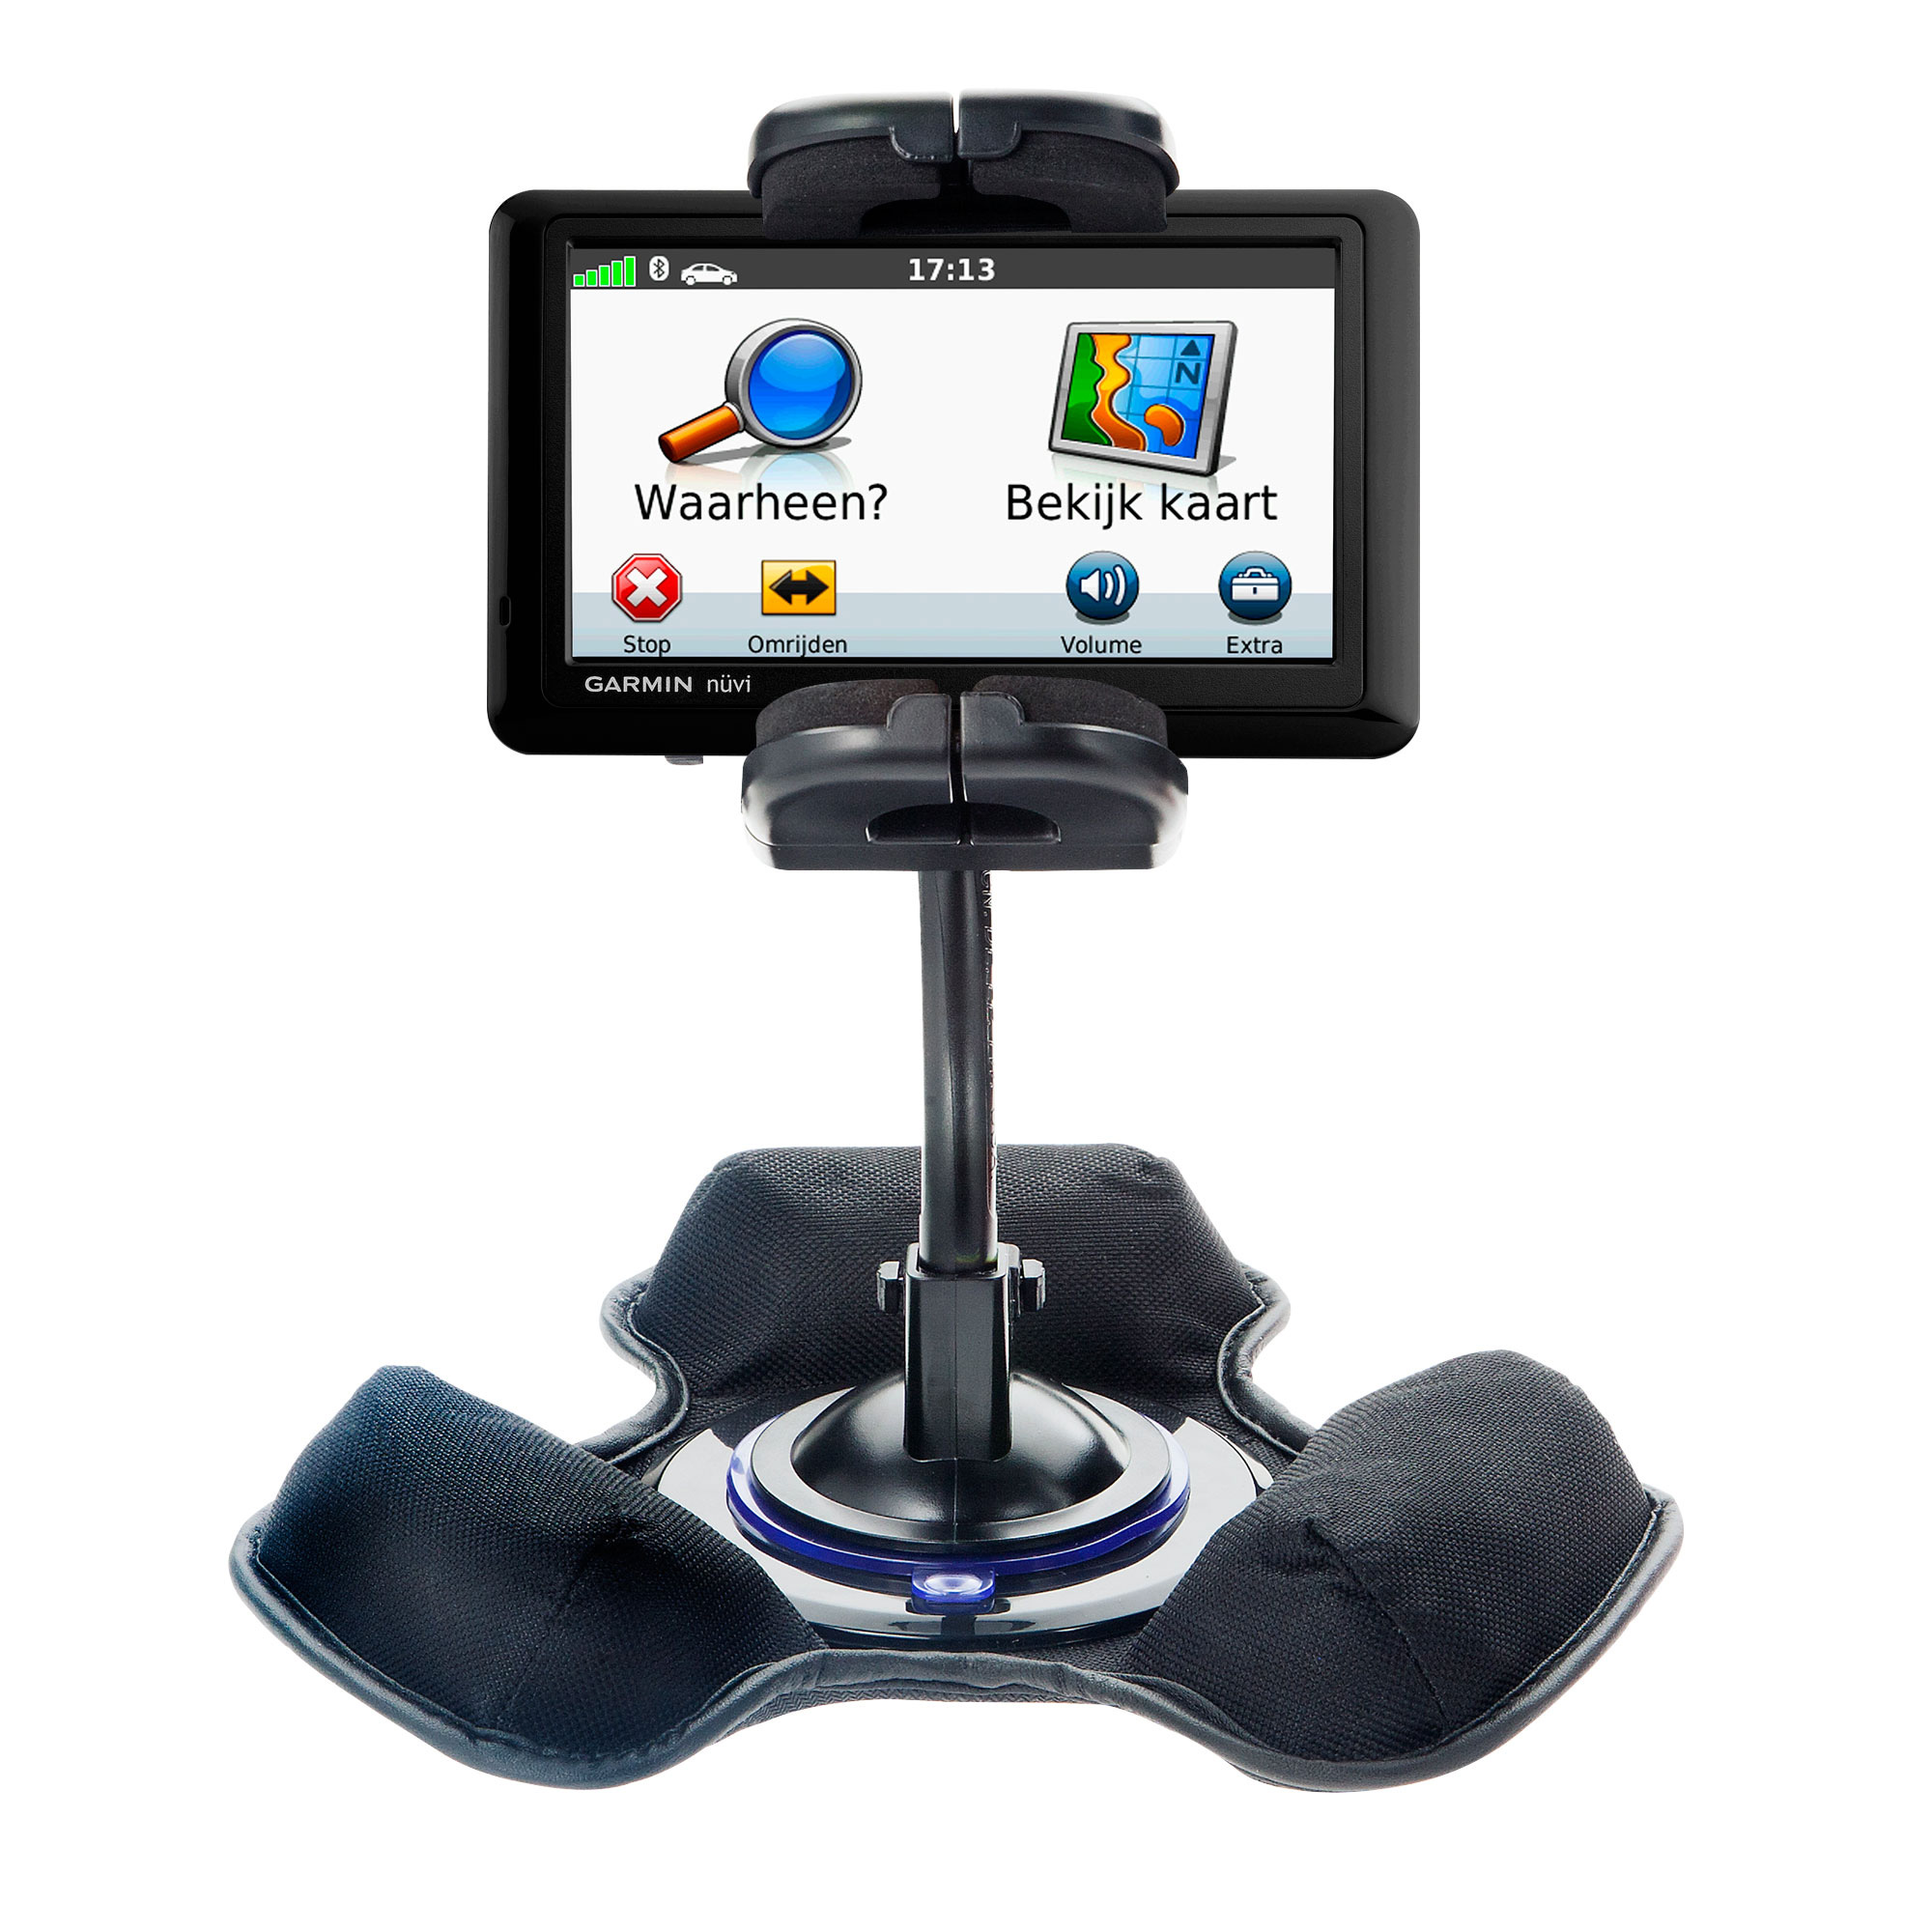 Car / Truck Vehicle Holder Mounting System for Garmin nuvi 1490LMT 1490T Includes Unique Flexible Windshield Suction and Universal Dashboard Mount Options